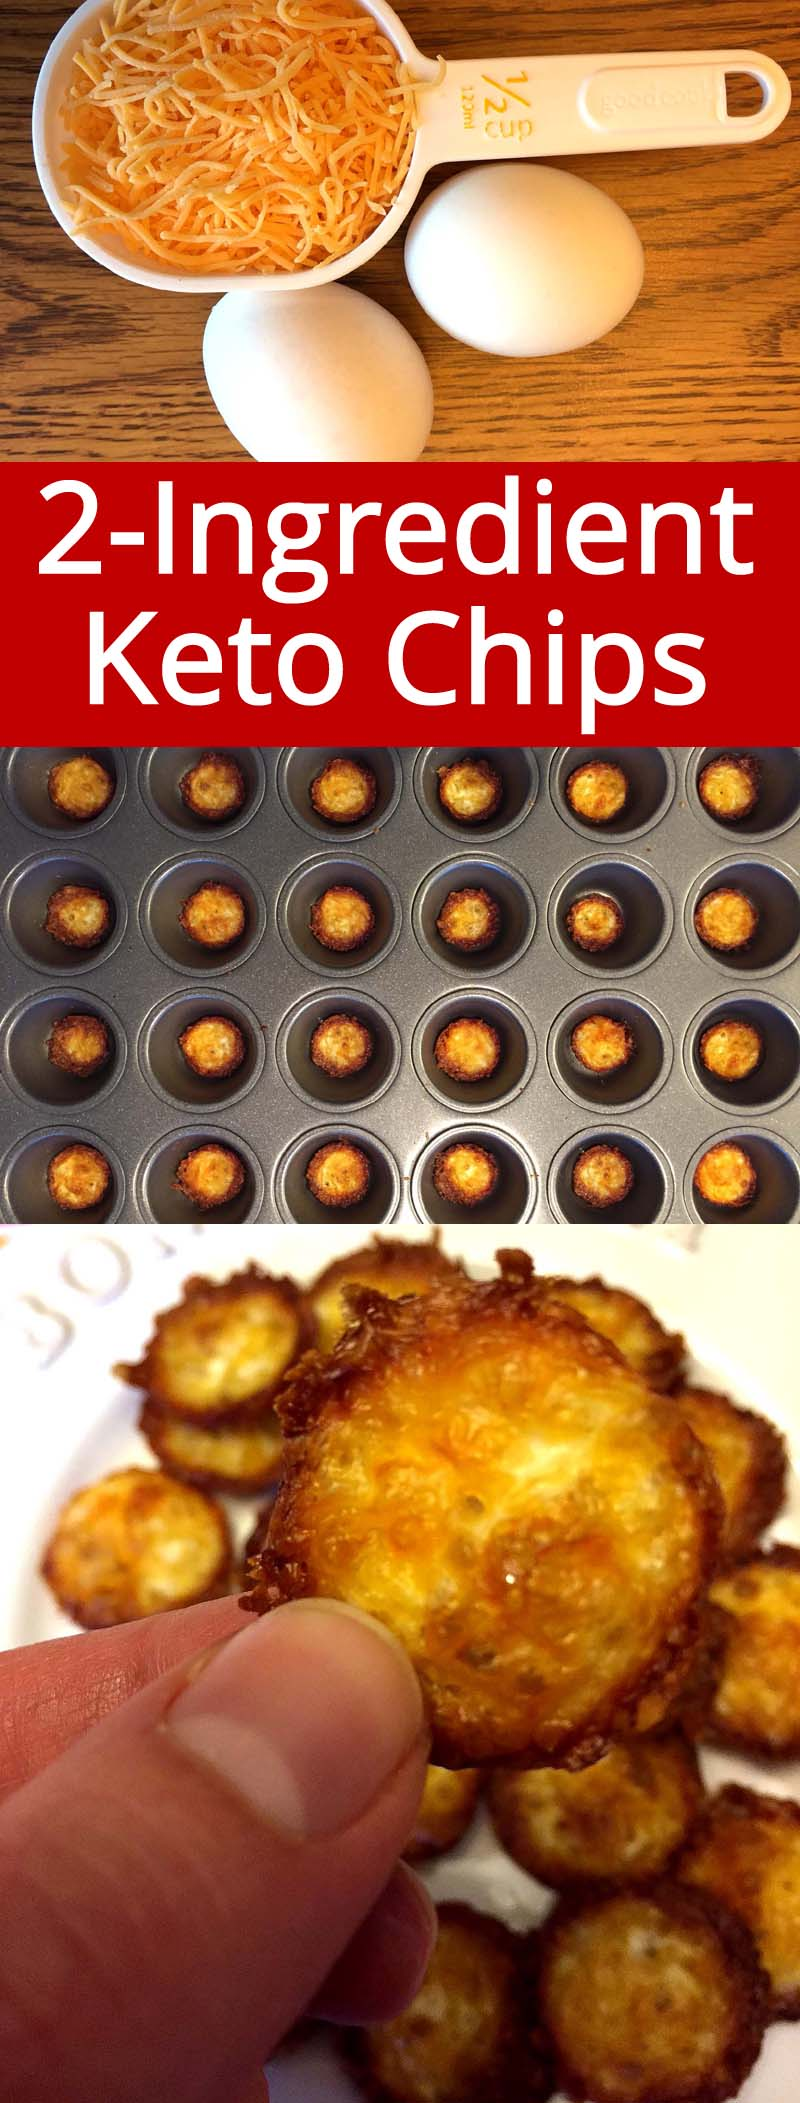 These are the best keto chips ever!  I love cheddar cheese! They are so crunchy, amazing!